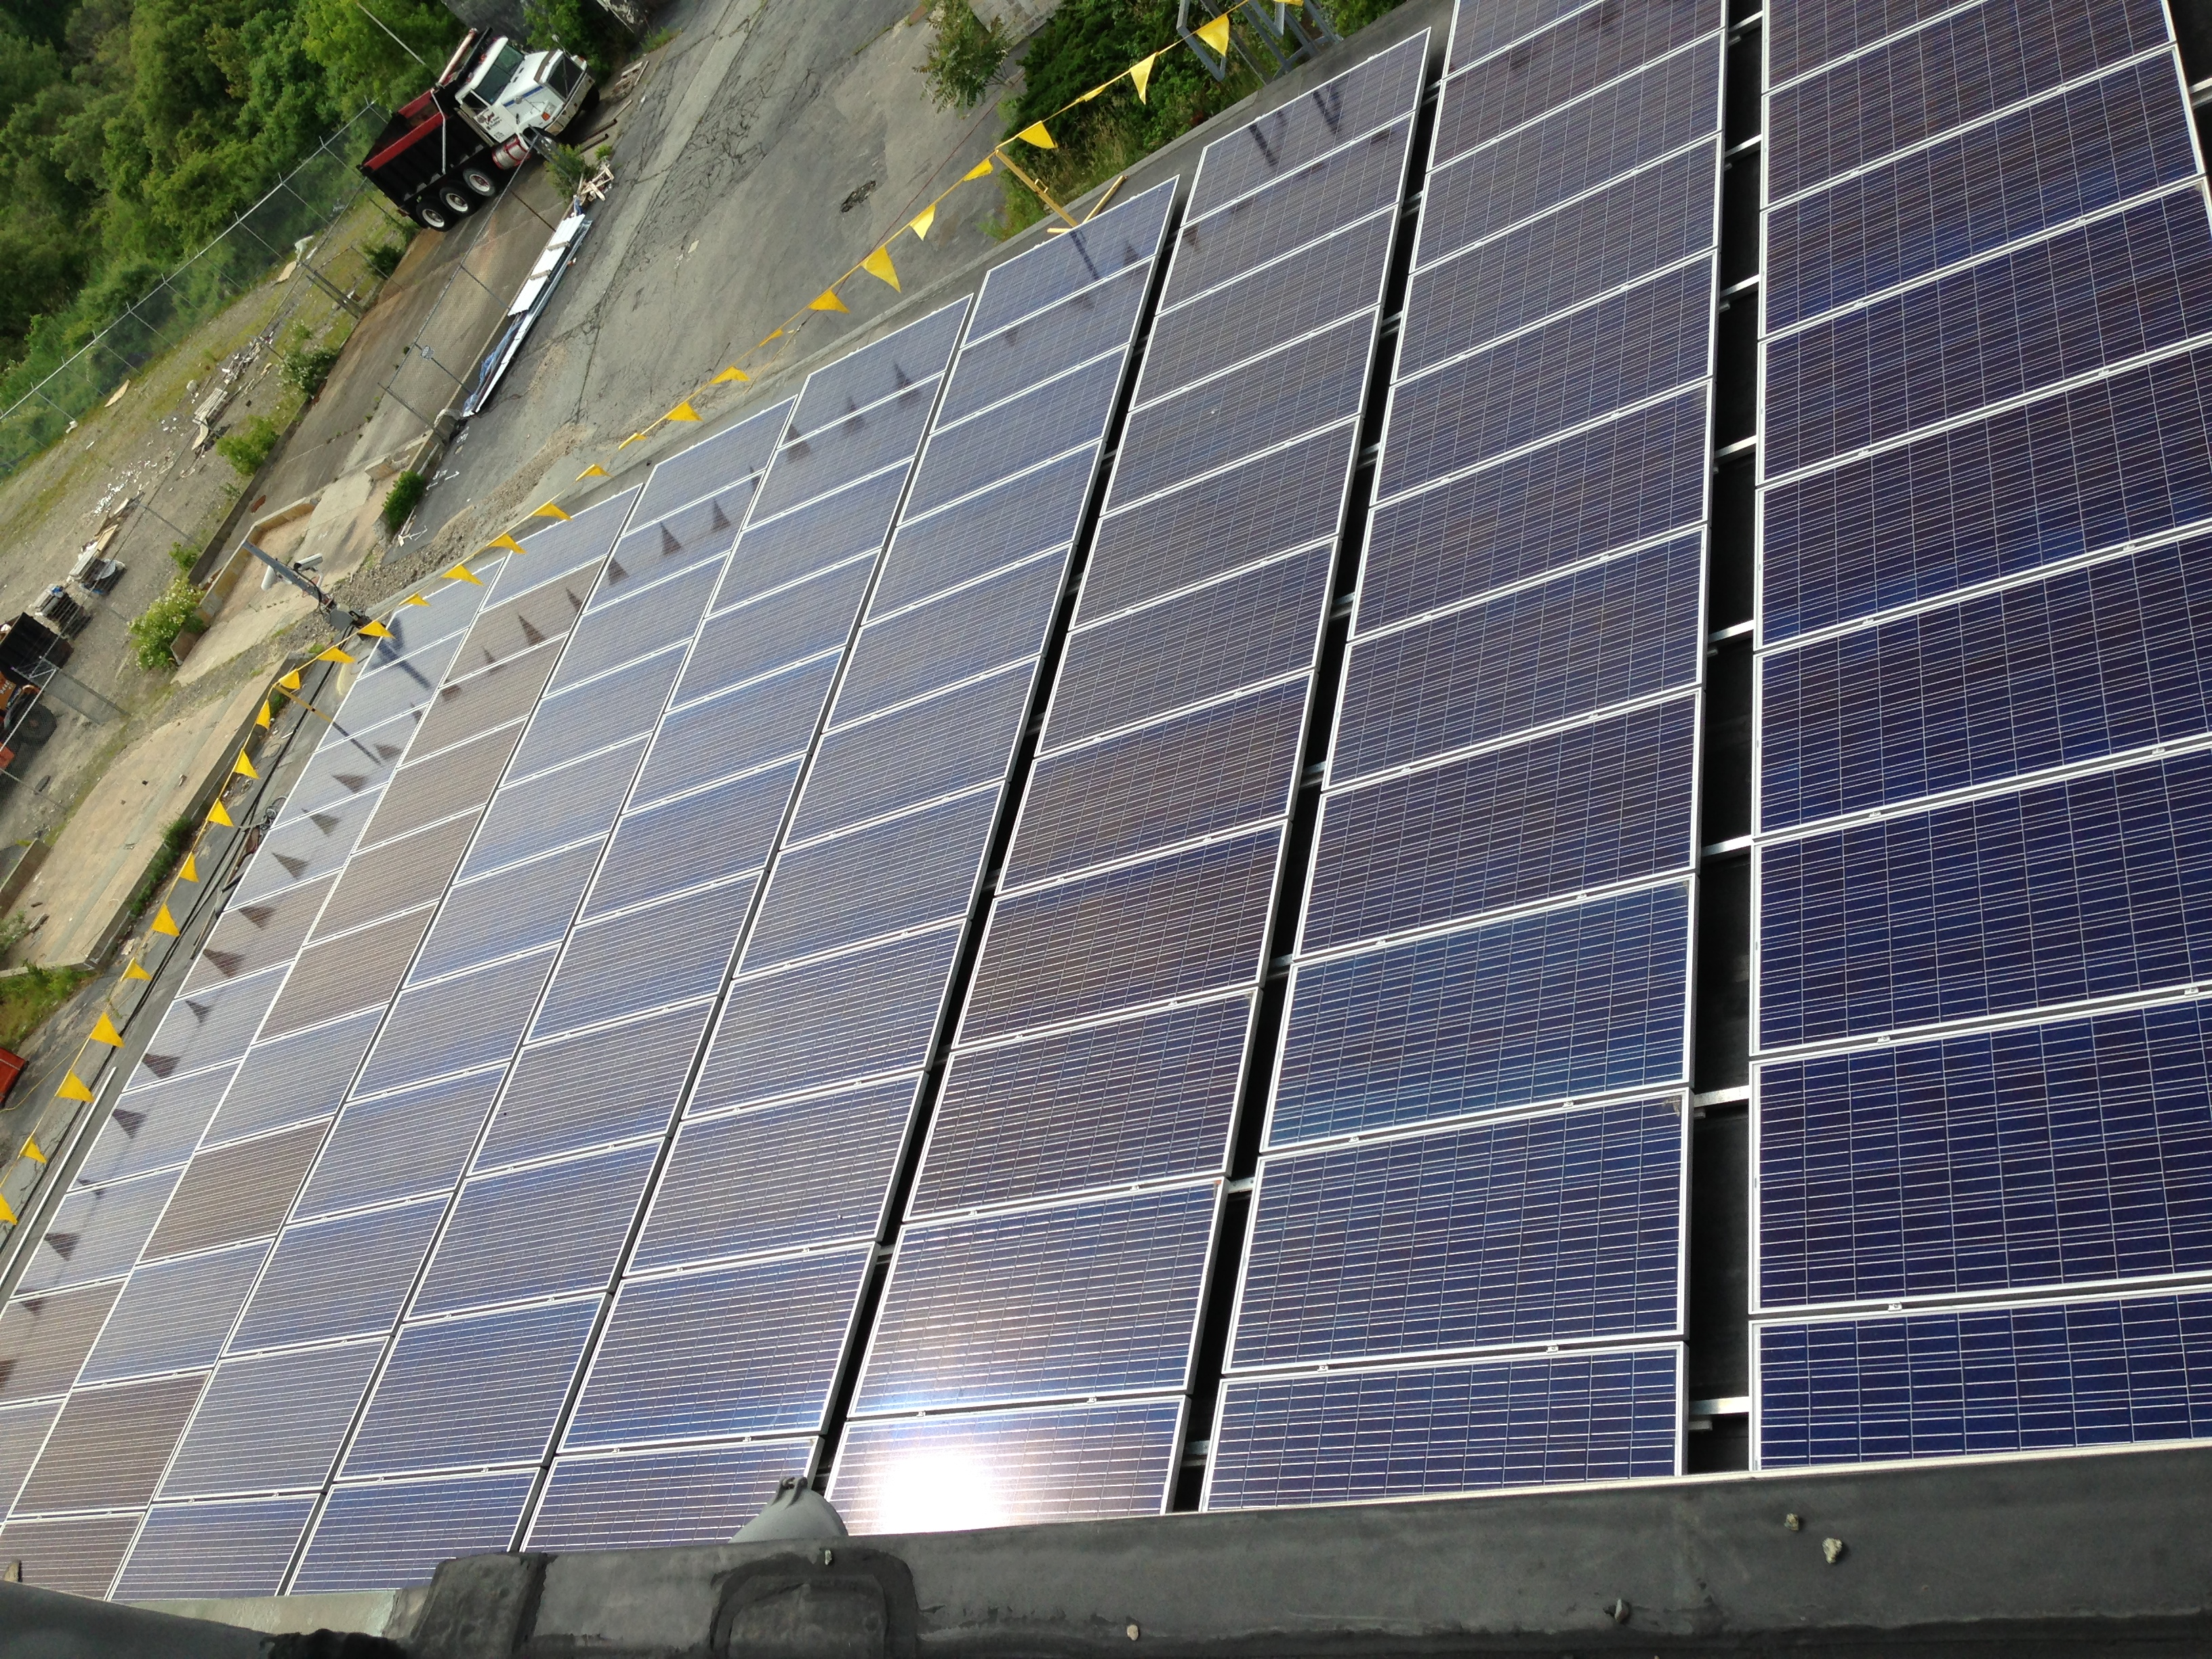 A portion of the 500kW rooftop array